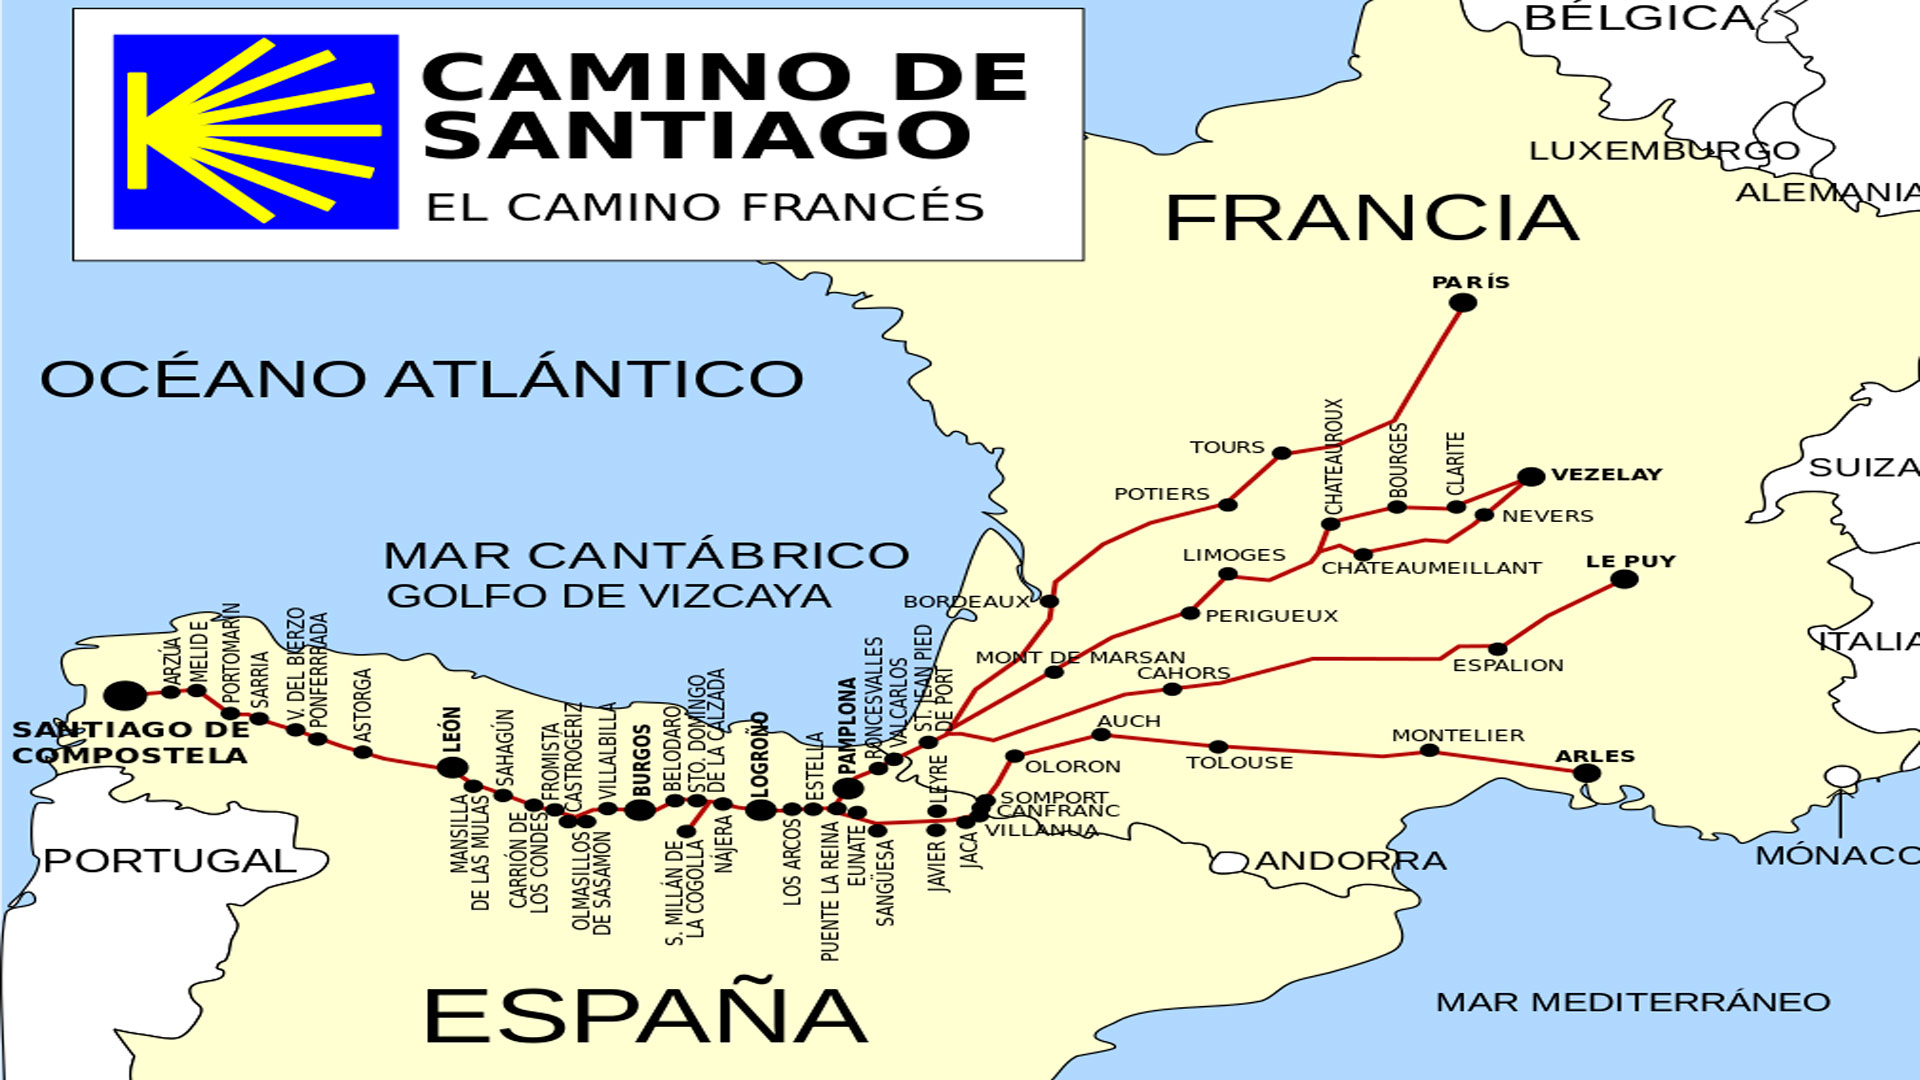 camino de santiago See and discover other items: historical business leaders, camino de santiago, the camino de santiago, travel spain, travel to spain, travel and exploration books.